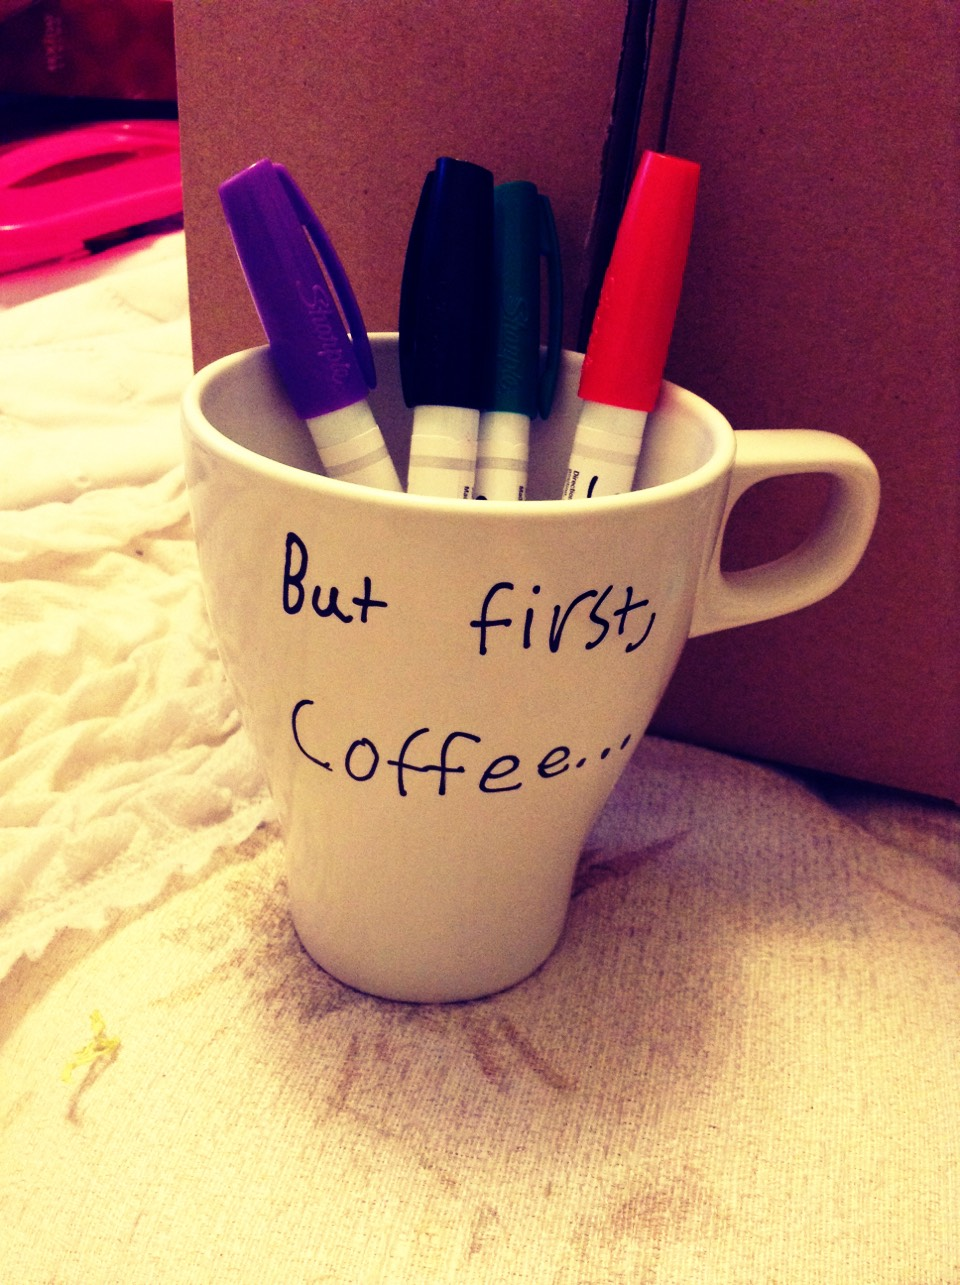 This is the mug I made all you need is a white mug and oil based sharpies